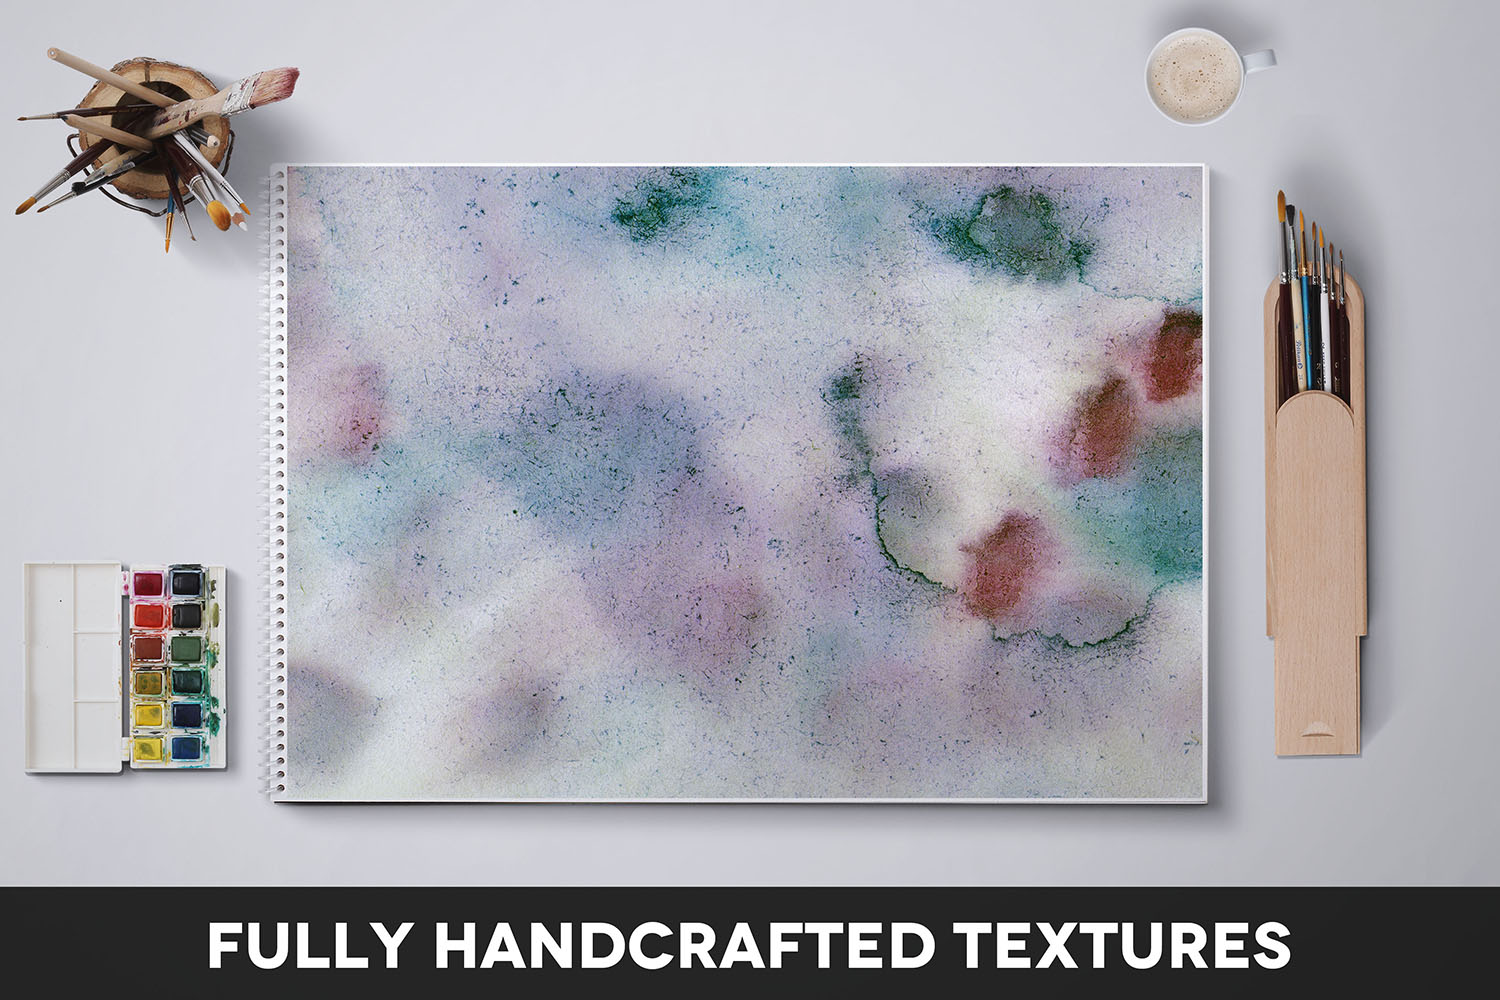 Handcrafted Watercolor Textures Vol. 07 example image 2